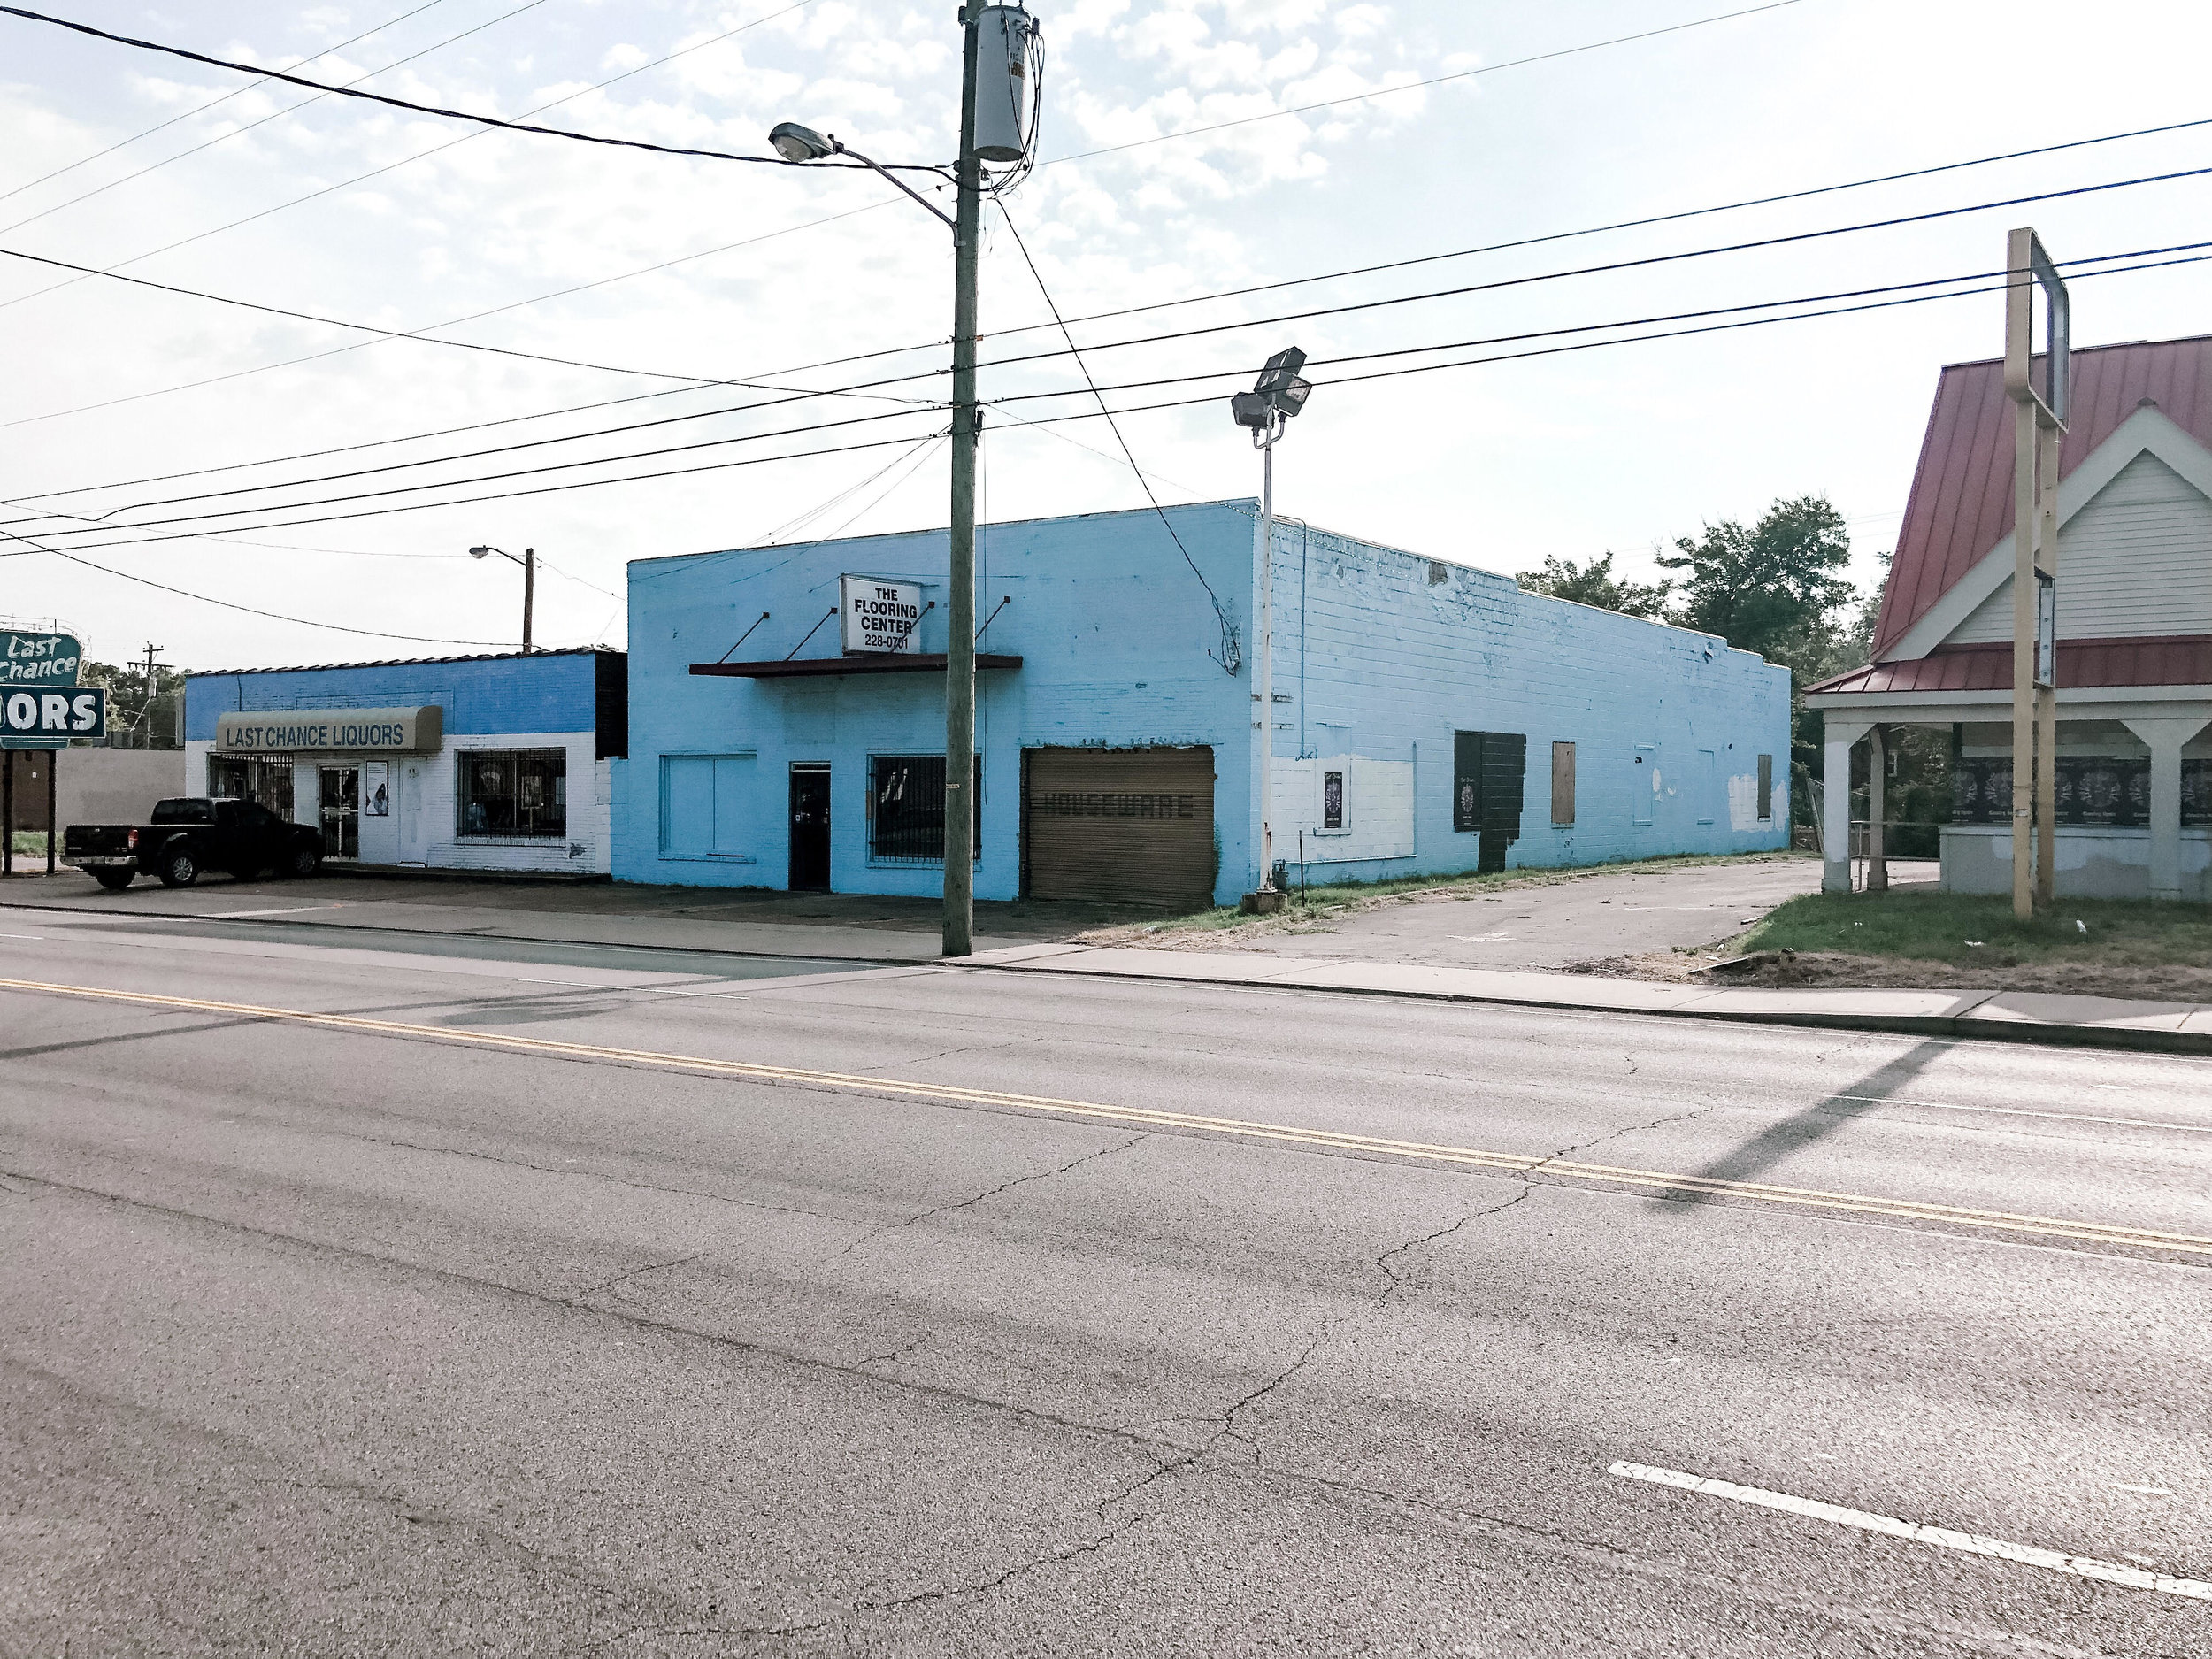 835 Dickerson pike - East NashvilleOffice, Retail, Flex5,175 sf on .18 acresFeaturing two roll-up doors, 18'+ ceilings, and high visibility on Dickerson Pike with proximity to I-65, Ellington Parkway, and the River North development.